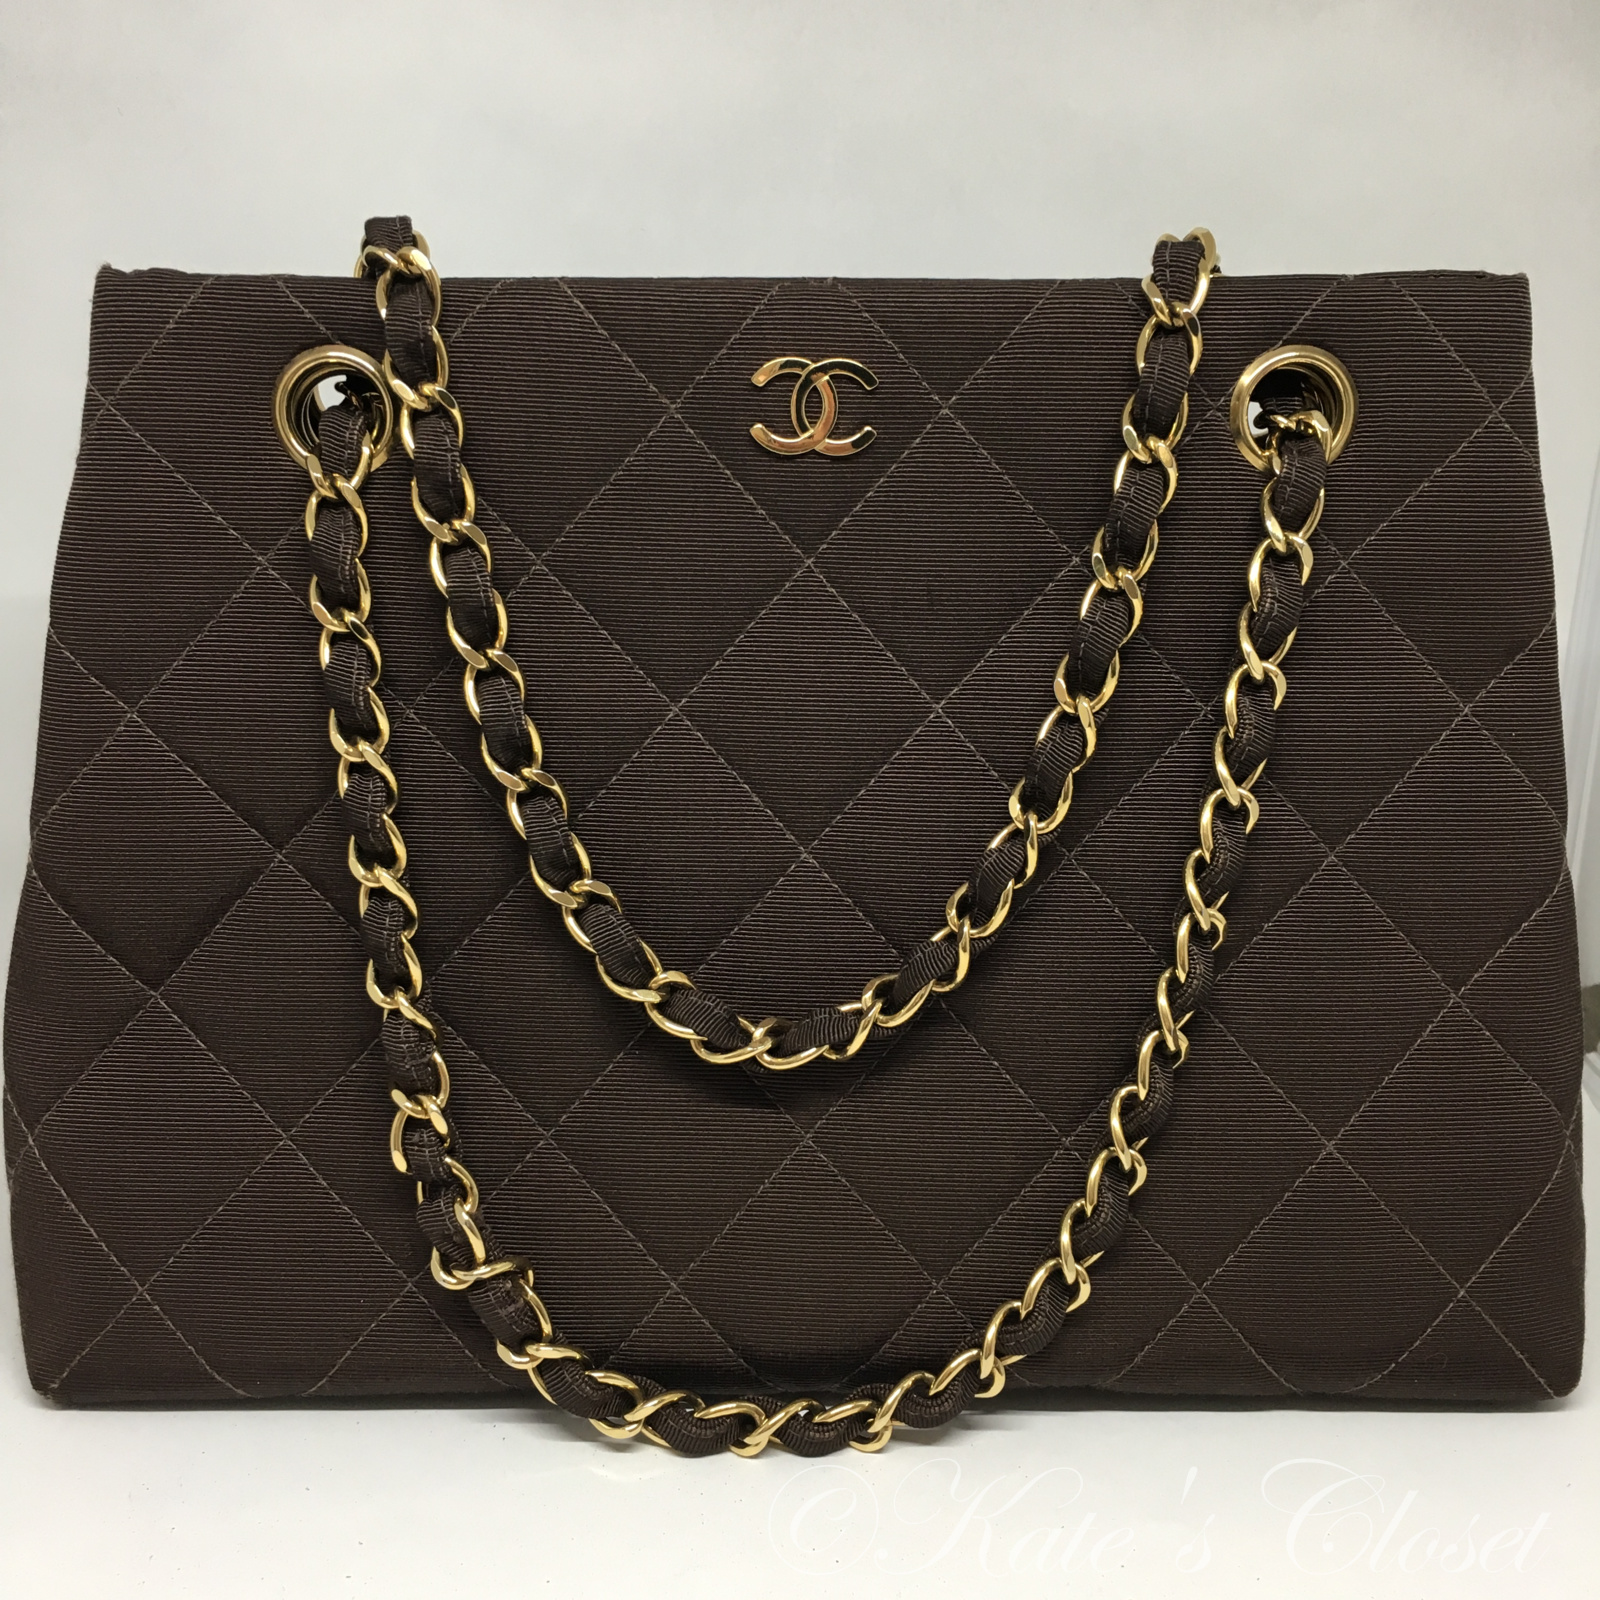 CHANEL Brown Quilted Canvas Shoulder Bag